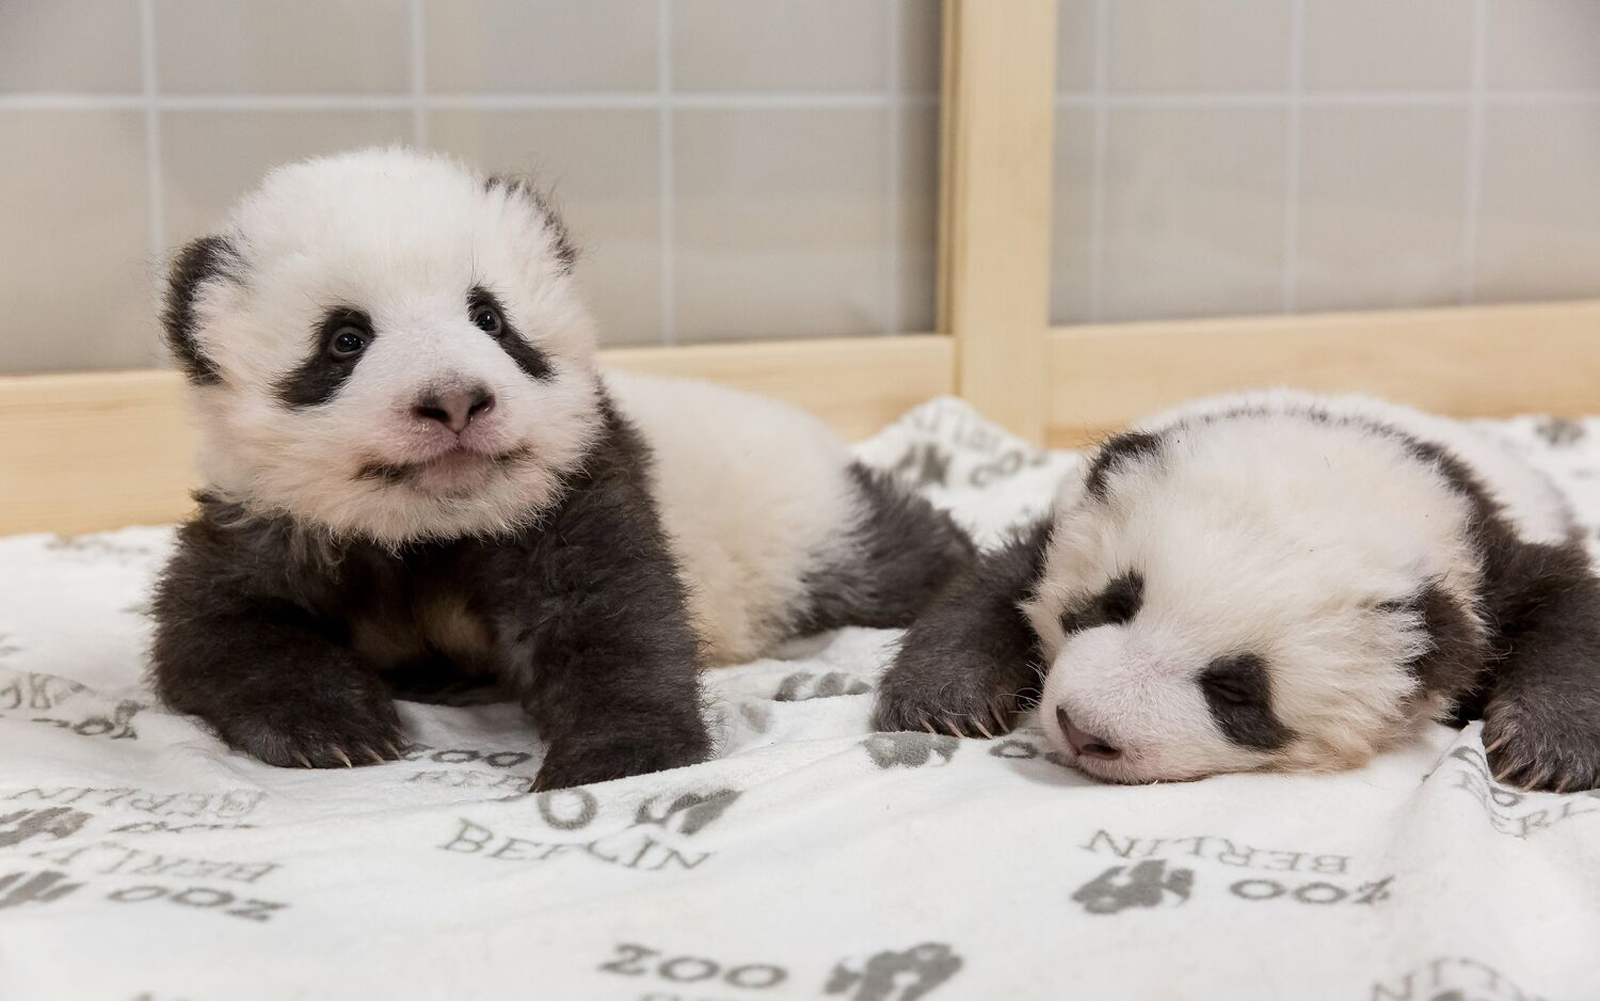 Twin panda cubs at Berlin Zoo